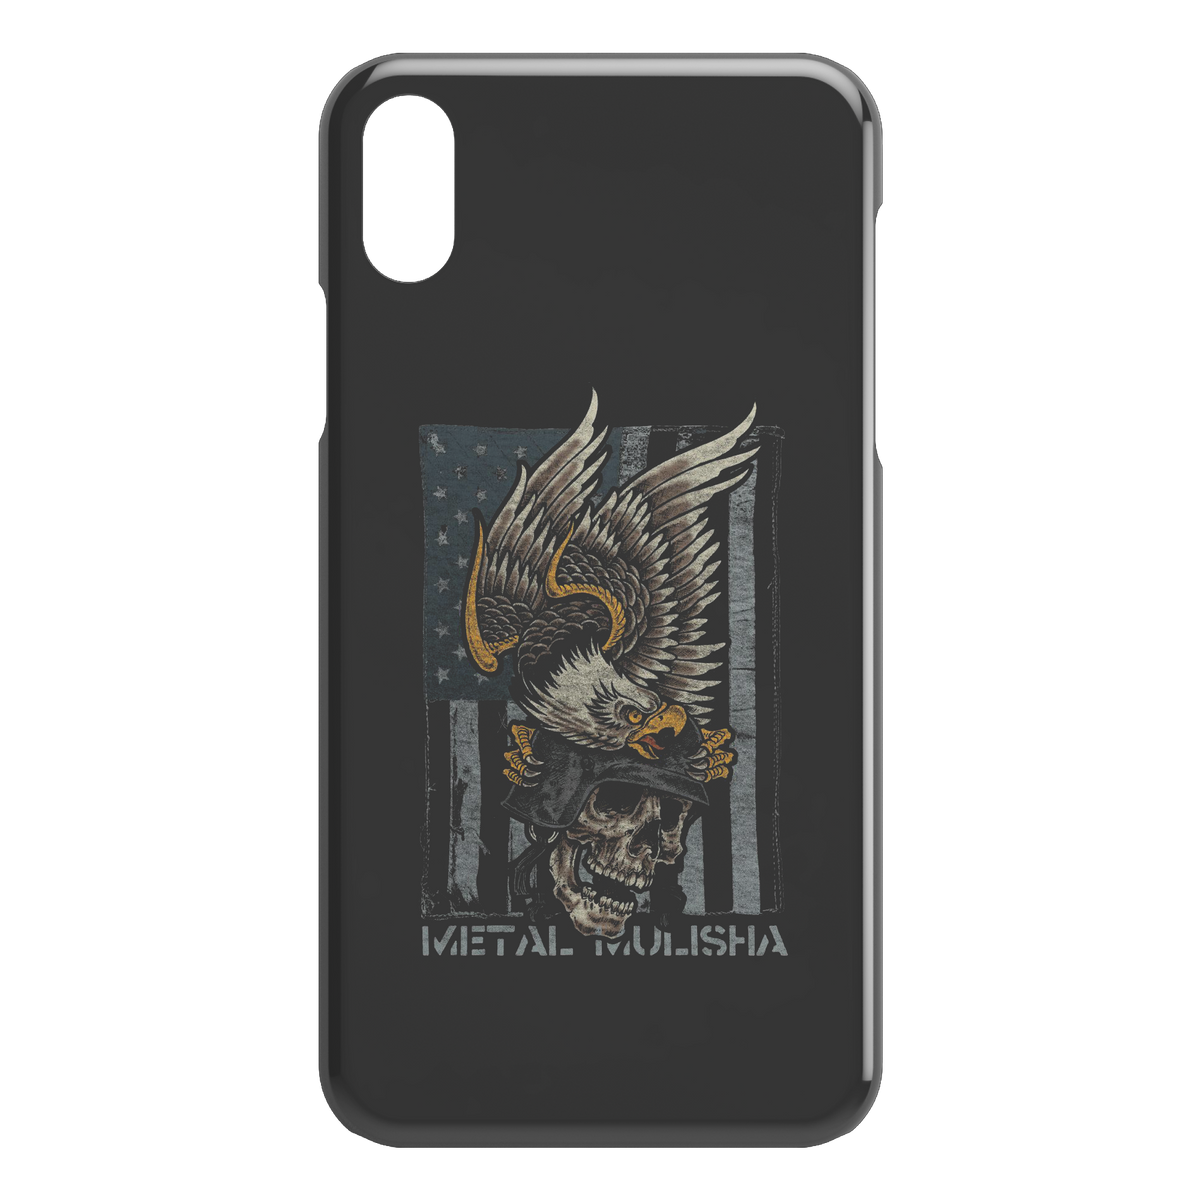 DEATH FROM ABOVE IPHONE CASE